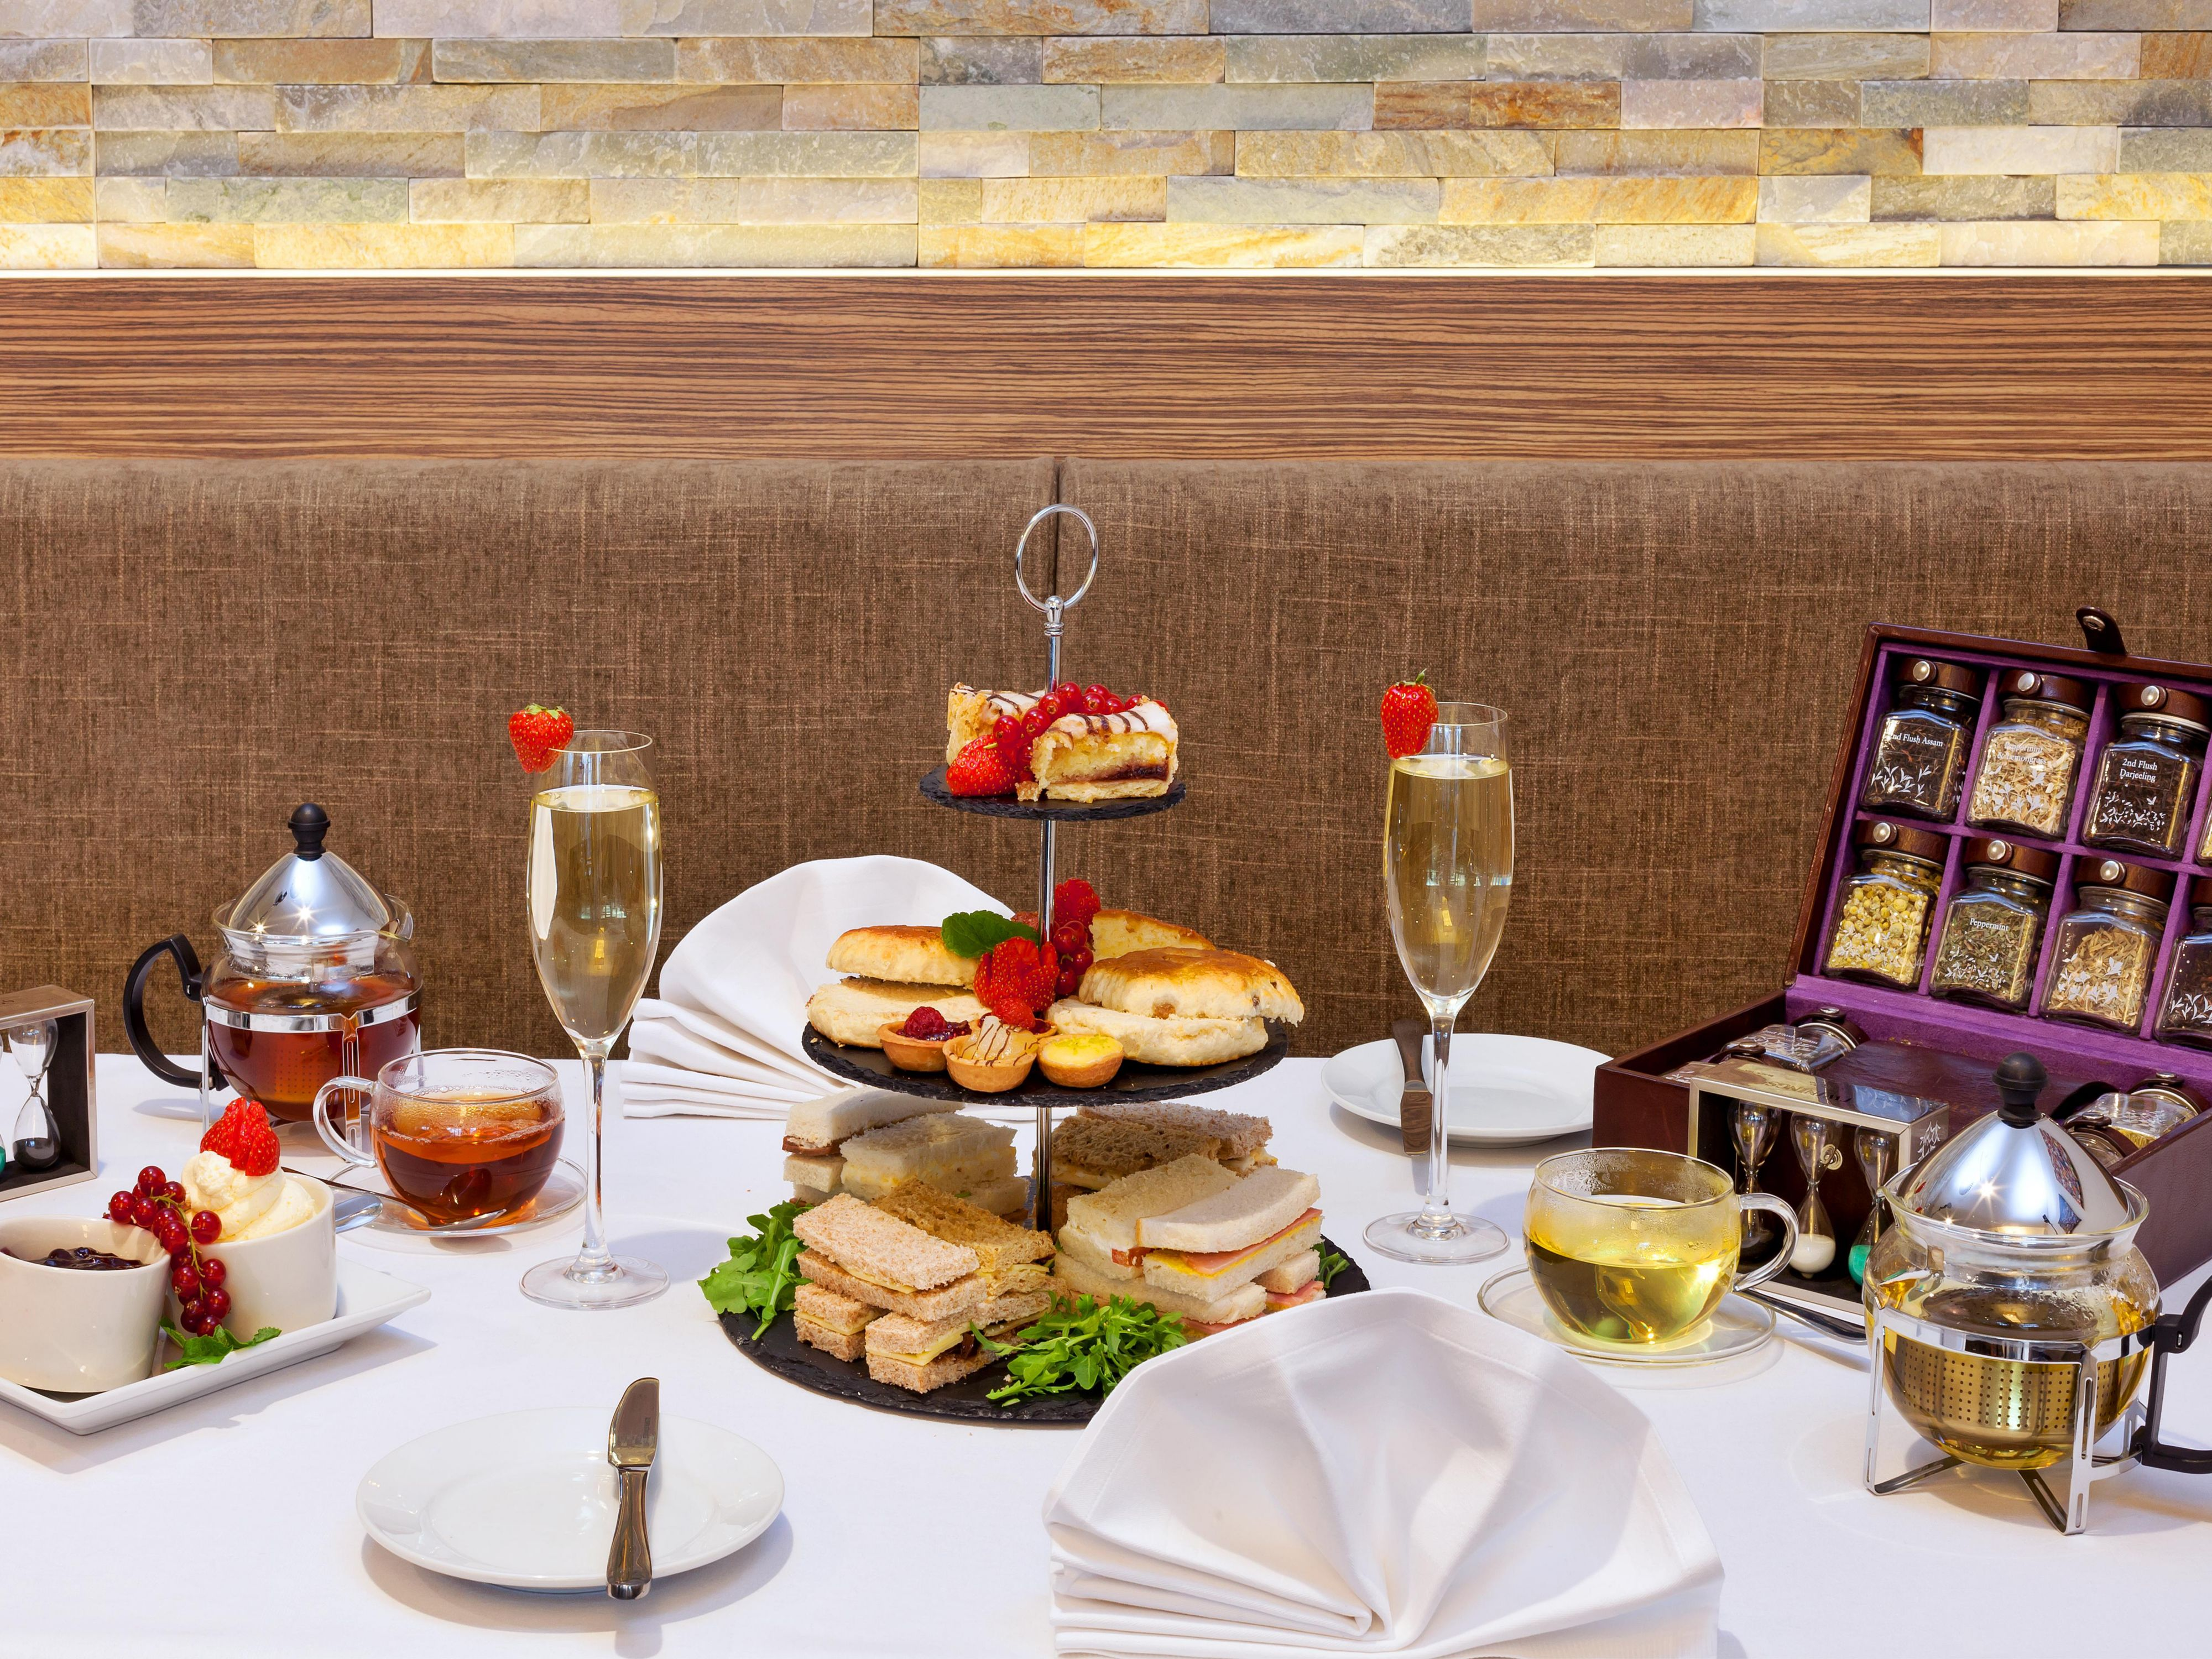 Enjoy an afternoon tea at 2012 restaurant